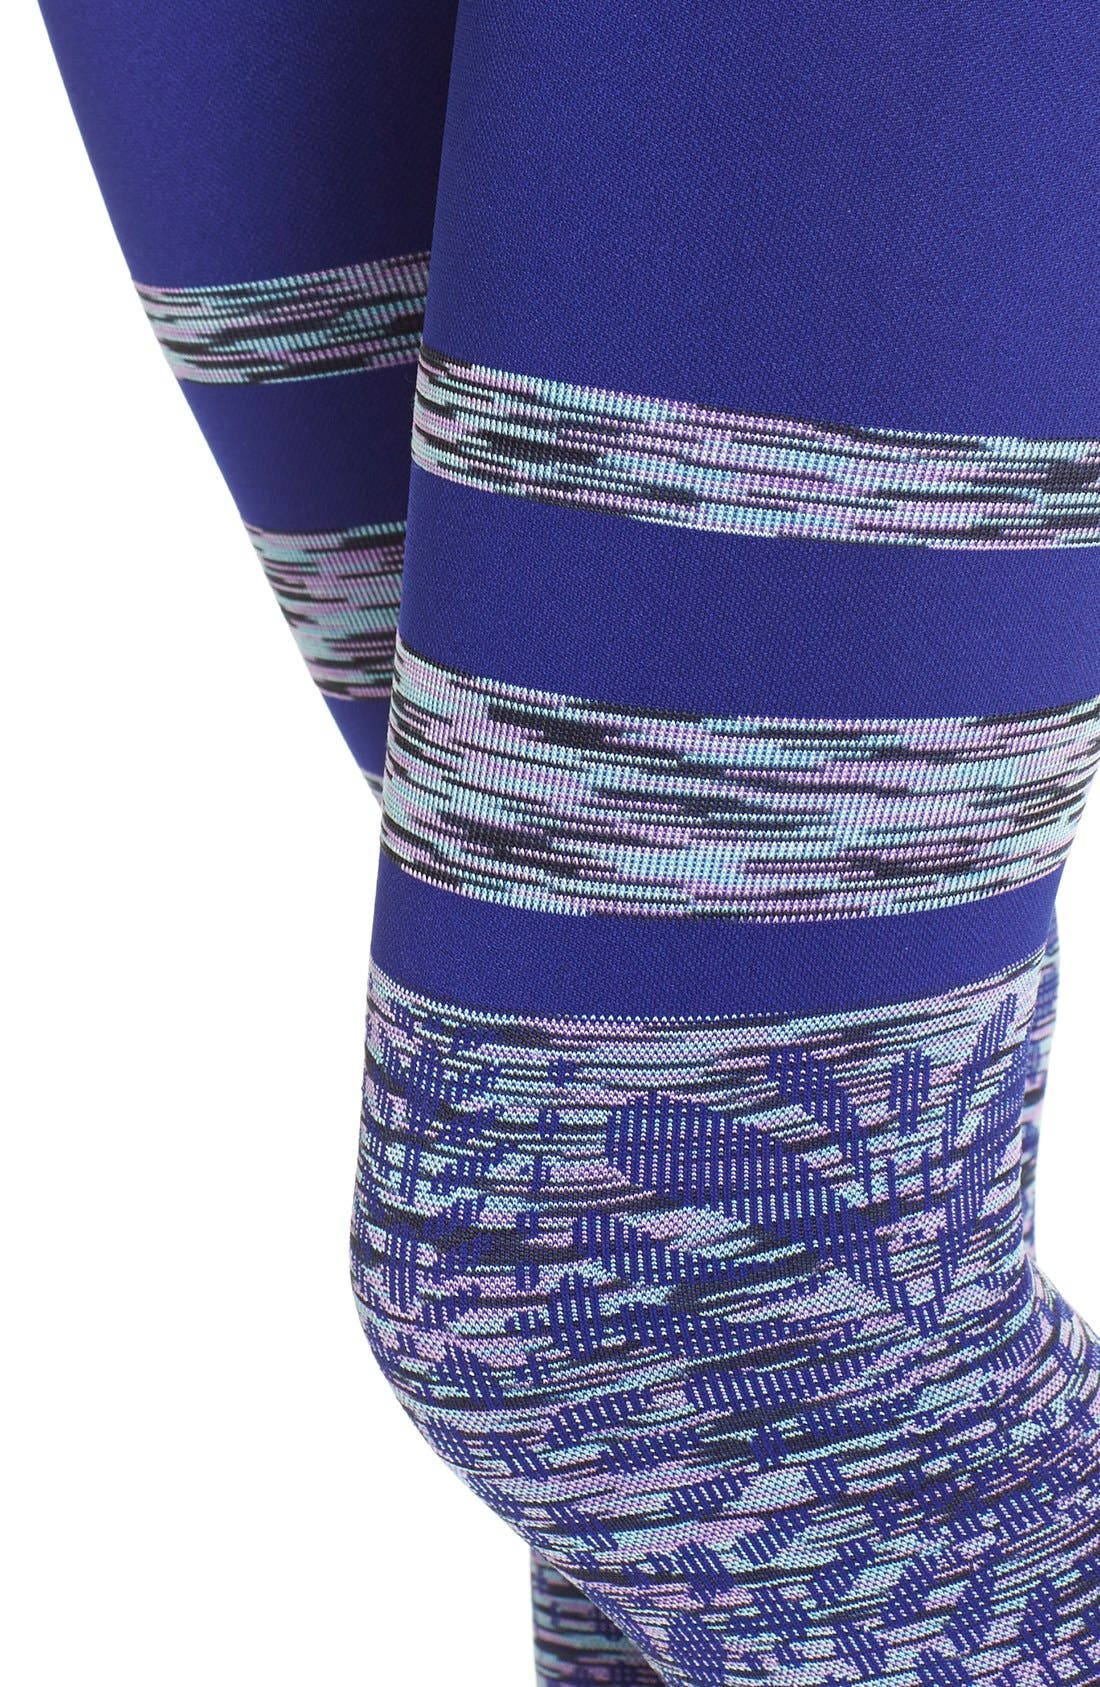 Alternate Image 4  - Climawear 'Sitting Pretty' High Rise Leggings